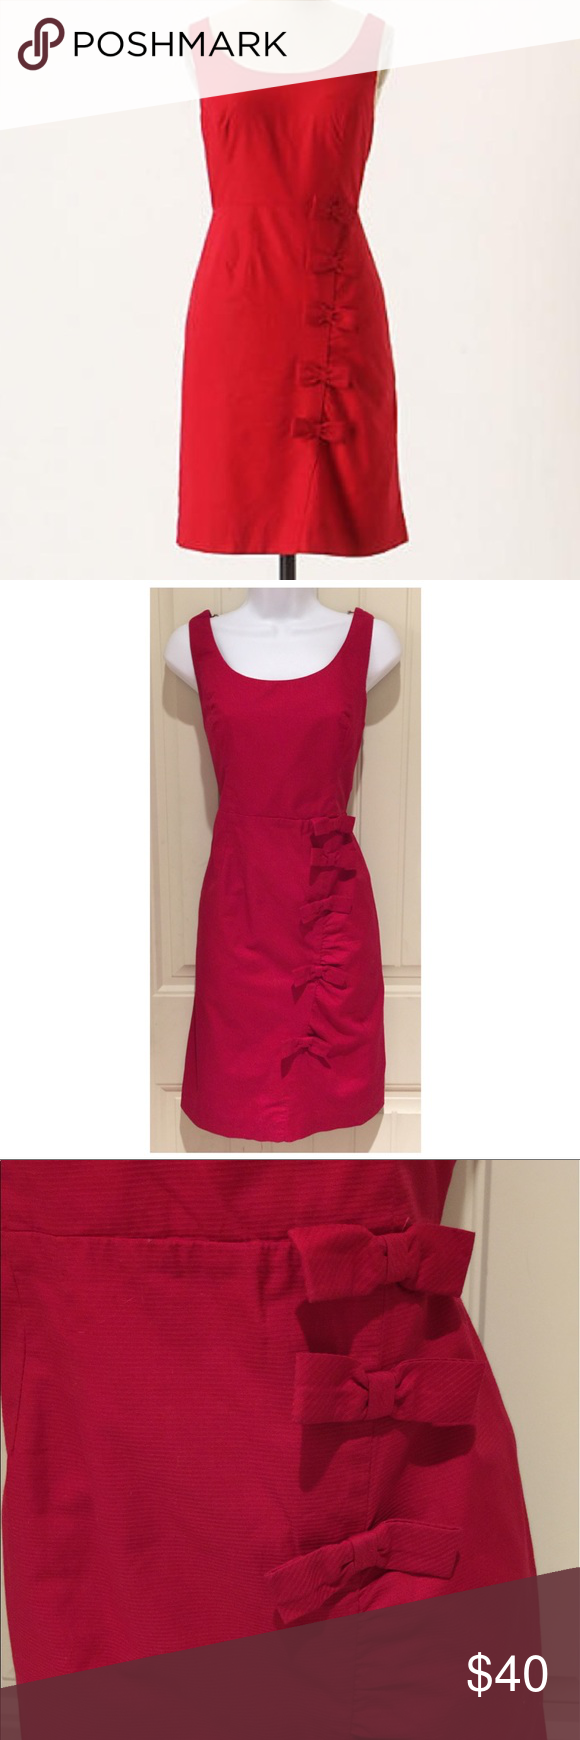 Anthro Moulinette Soeurs Cascading Bow Red Dress Anthropologie Bows